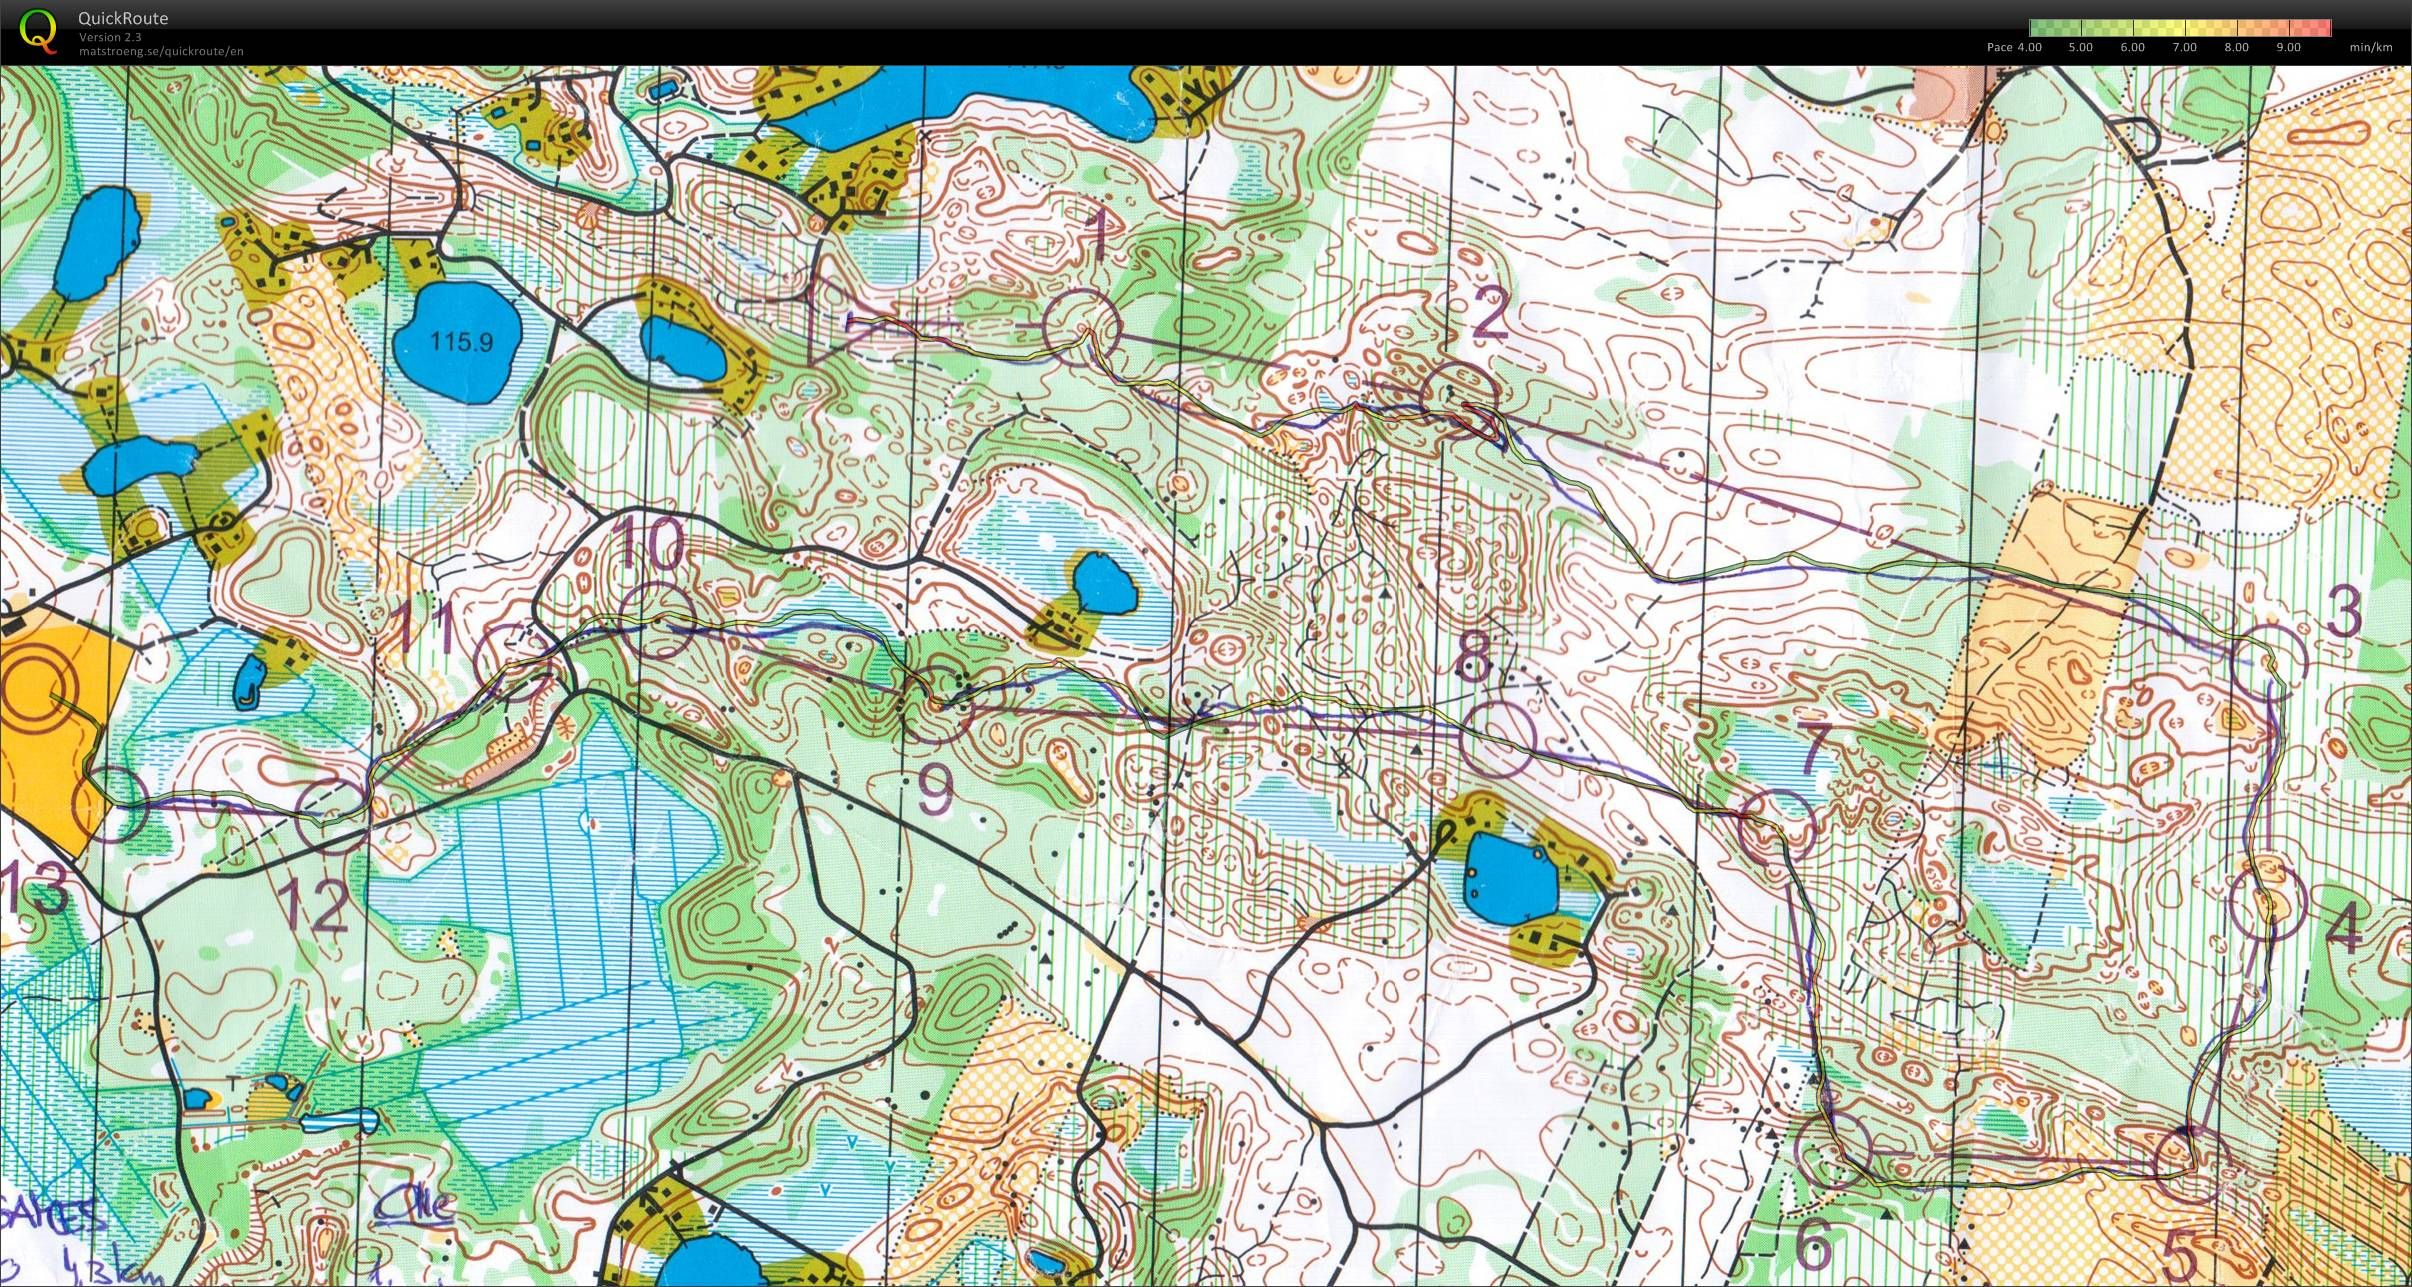 Forssa Games Forssa FIN June 15th 2010 Orienteering Map from